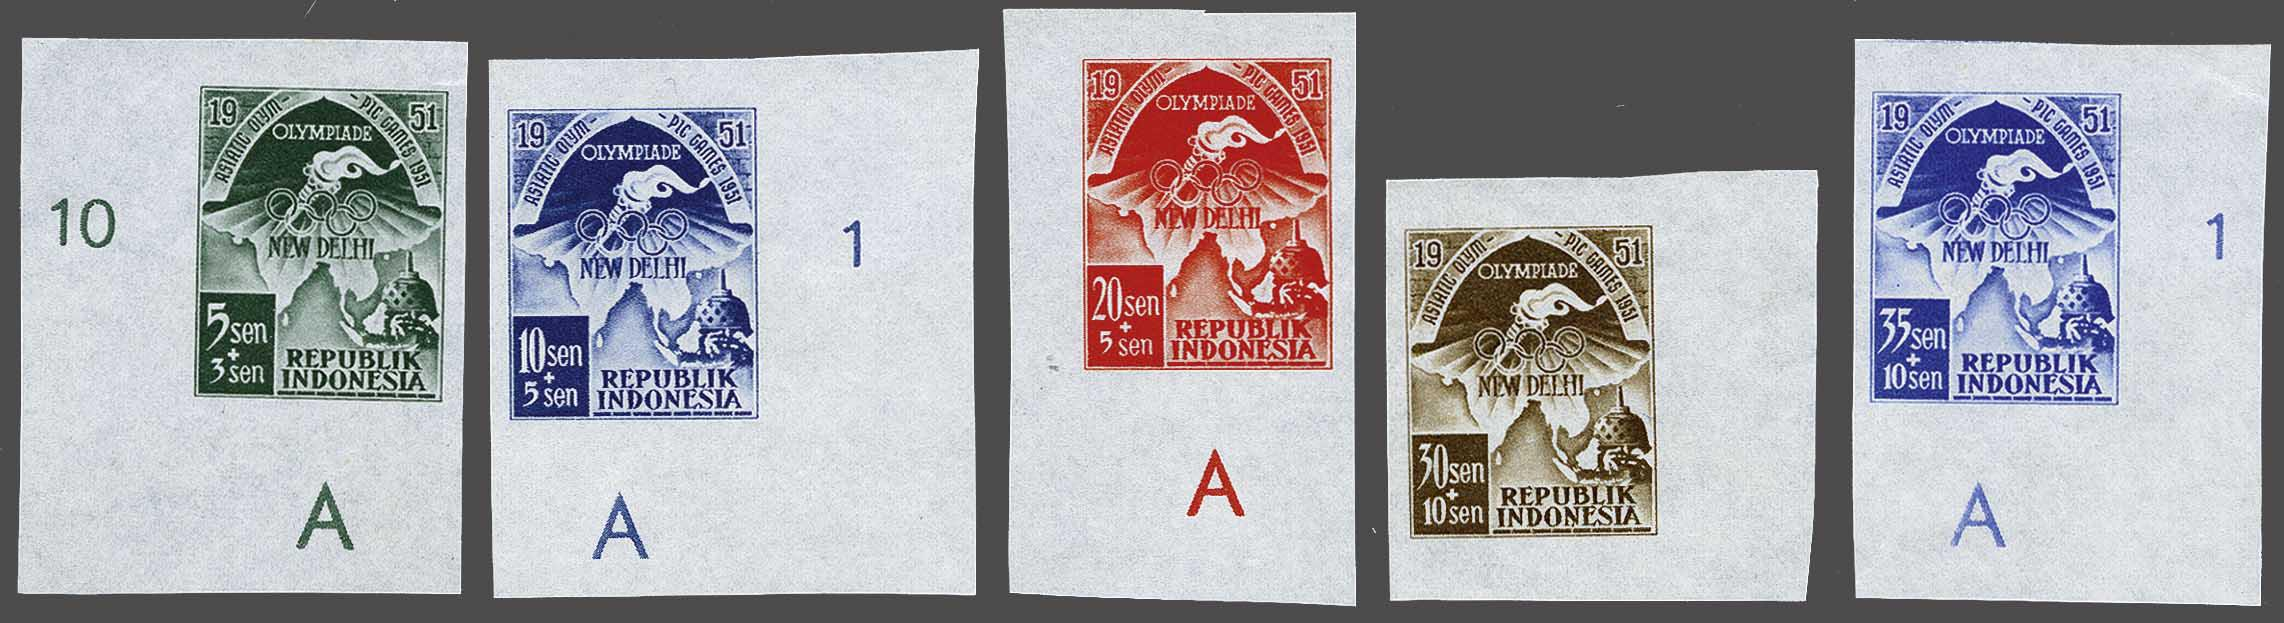 Lot 3805 - Netherlands and former colonies indonesia -  Corinphila Veilingen Auction 244 -Netherlands and former colonies, WW2 Postal History, Bosnia, German and British colonies, Egypt. - Day 3